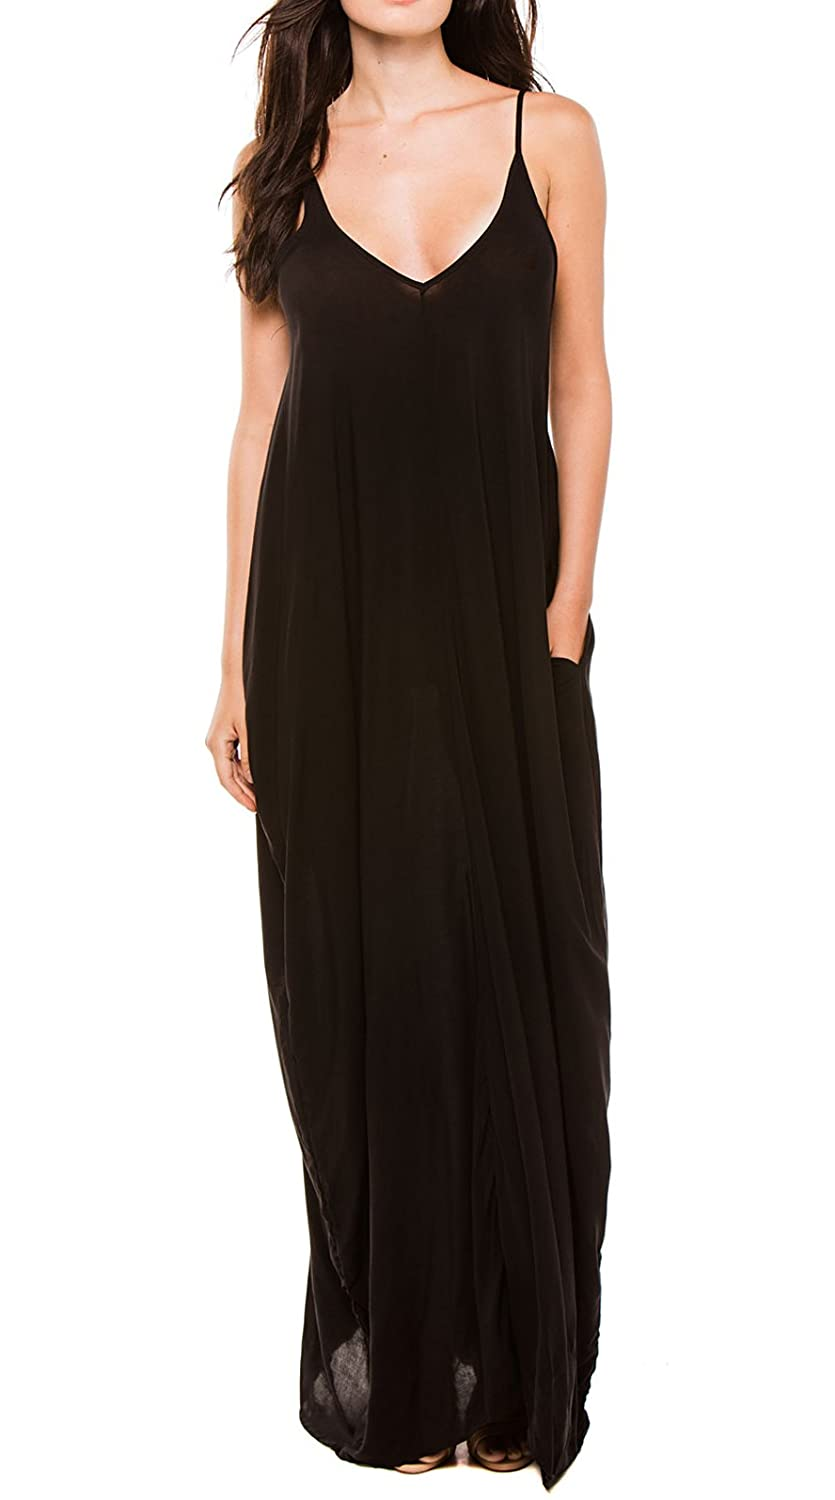 0352d4bf24 ELAN Billowy Black Maxi Dress with Spaghetti Straps and Pockets at Amazon  Women's Clothing store: